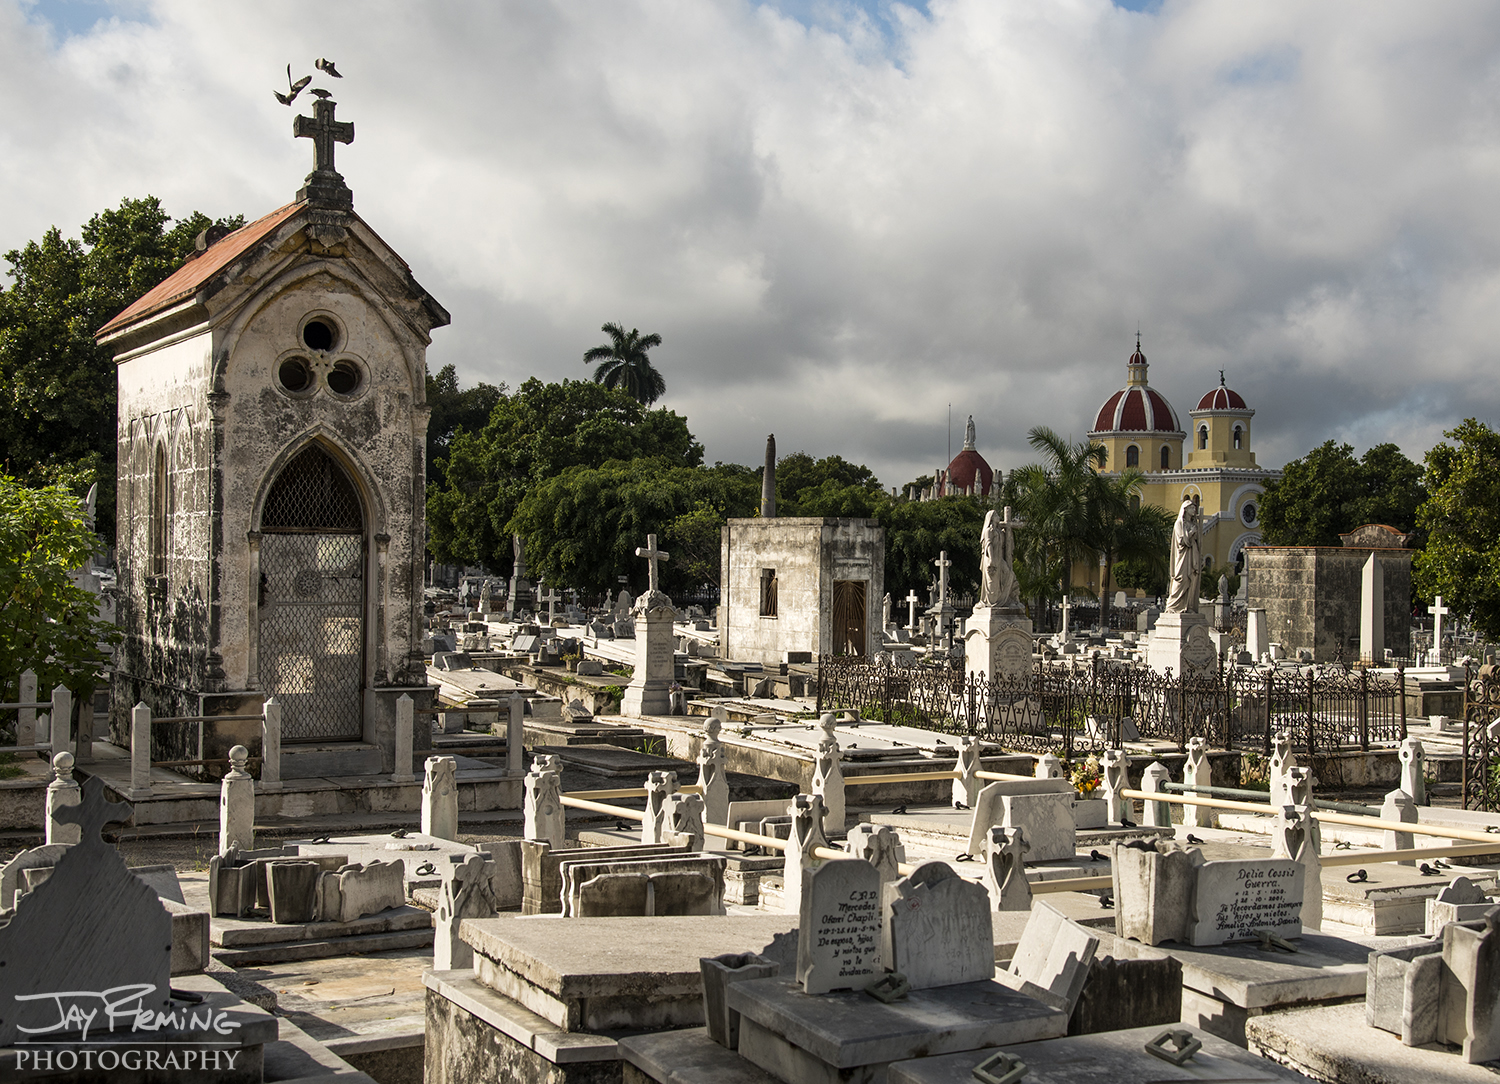 The Necrópolis de Cristóbal Colón is a 140 acre cemetery in the middle of Havana - there are over 800,000 graves in the cemetery.